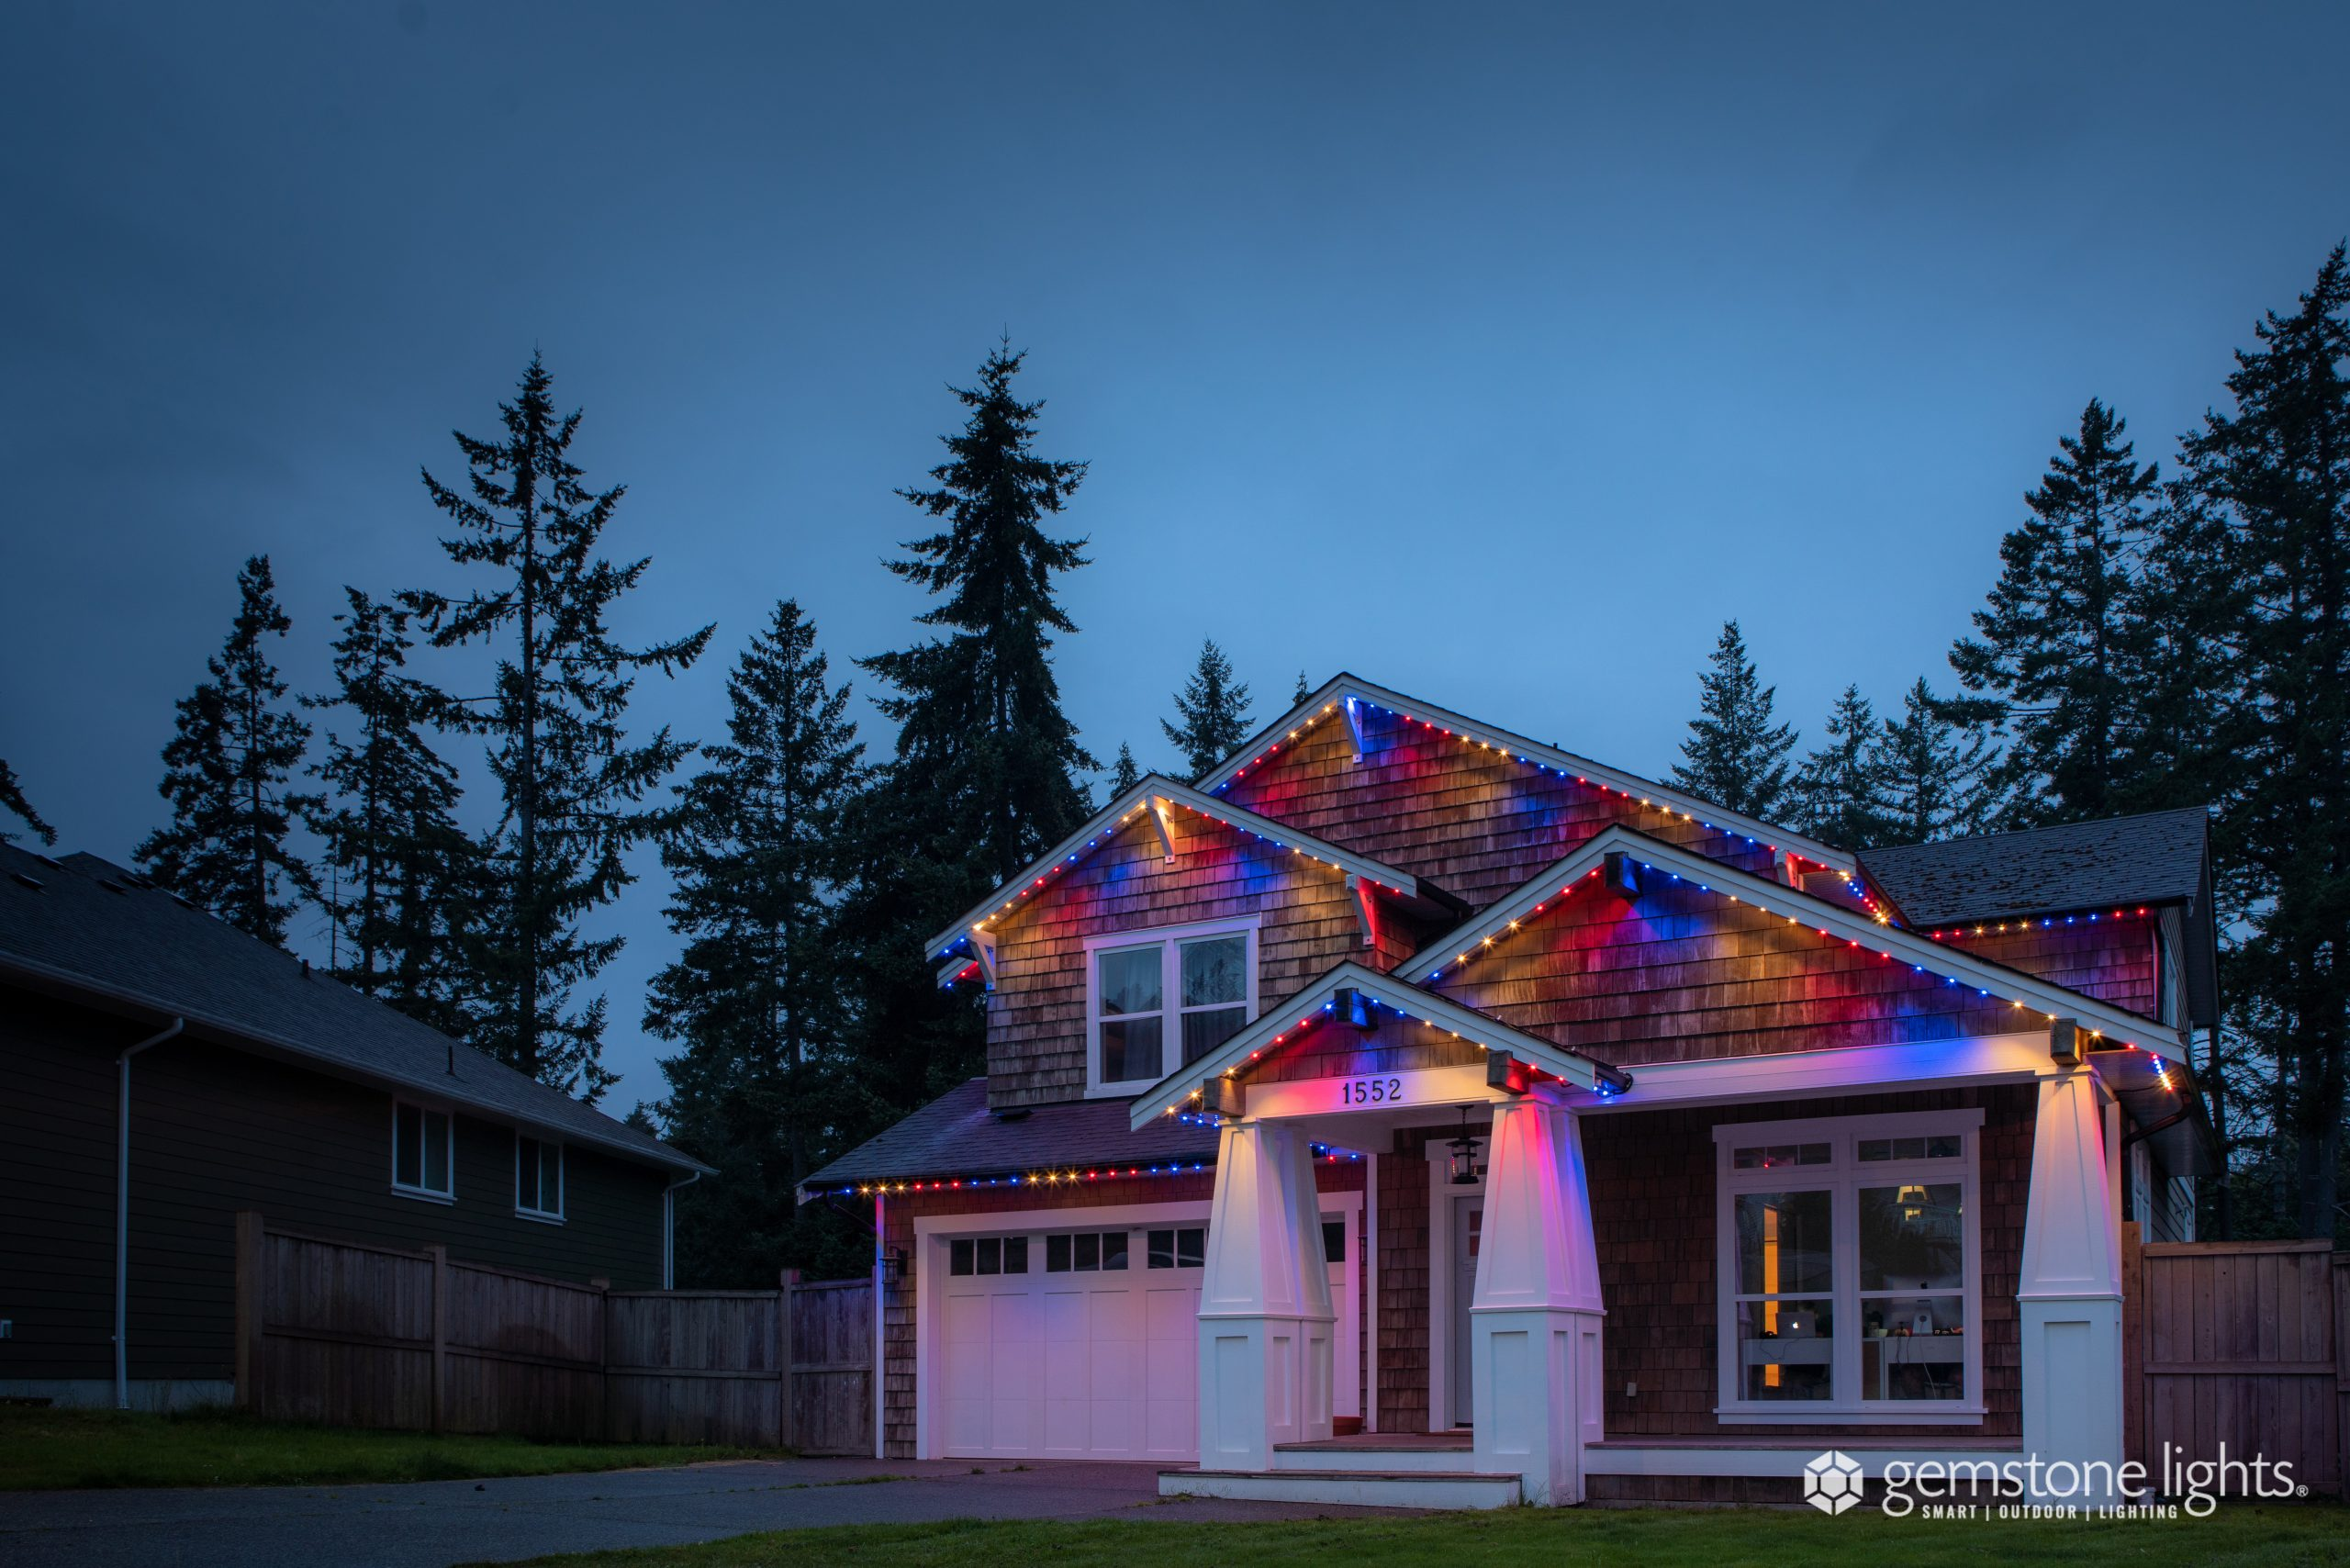 4th of july color changing soffit lights on a home